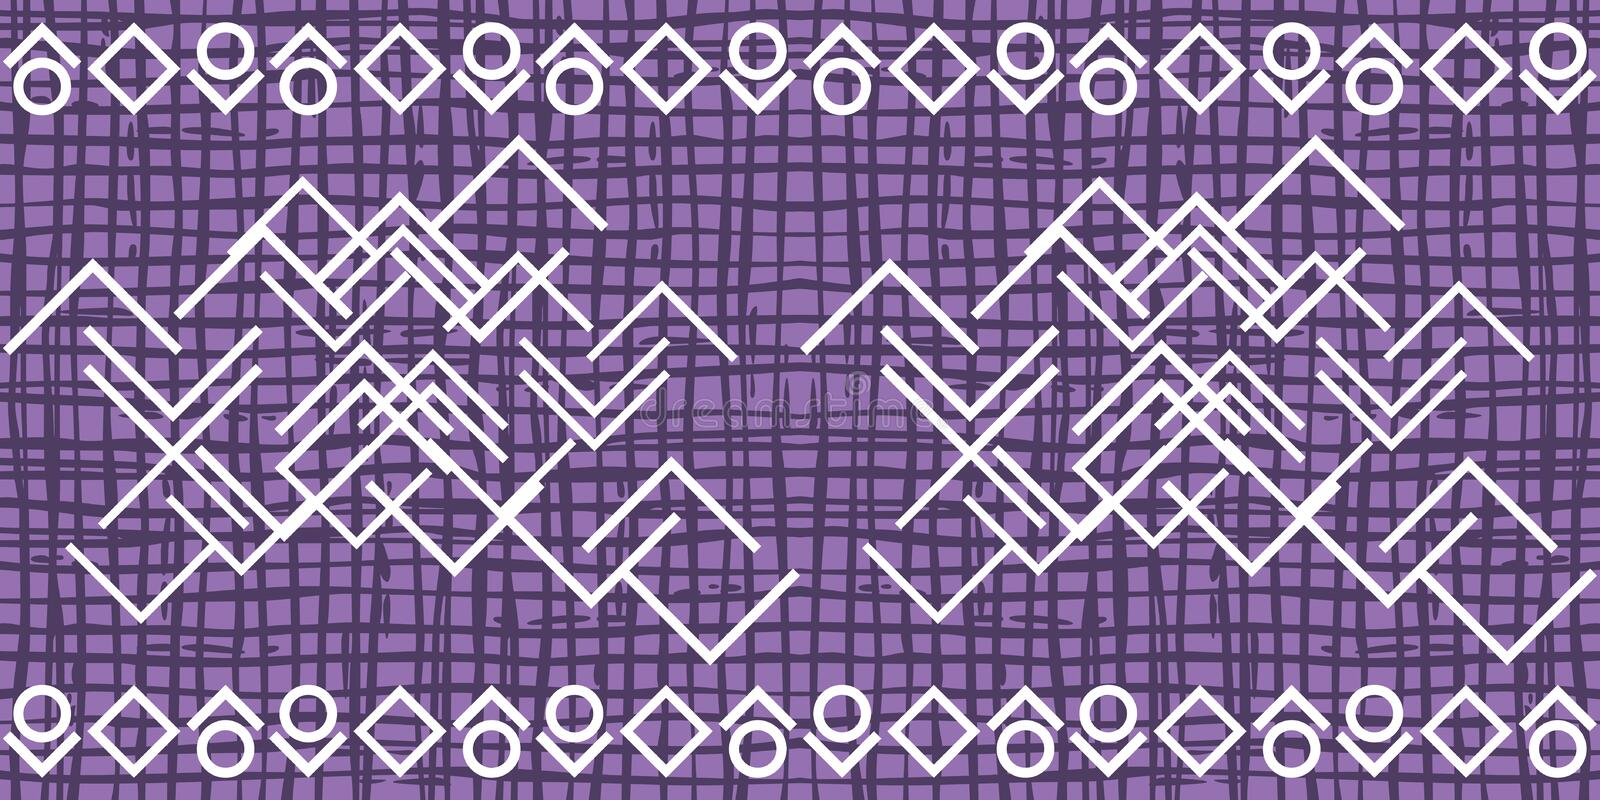 Dark violet irregular grid pattern with white ornament royalty free stock image